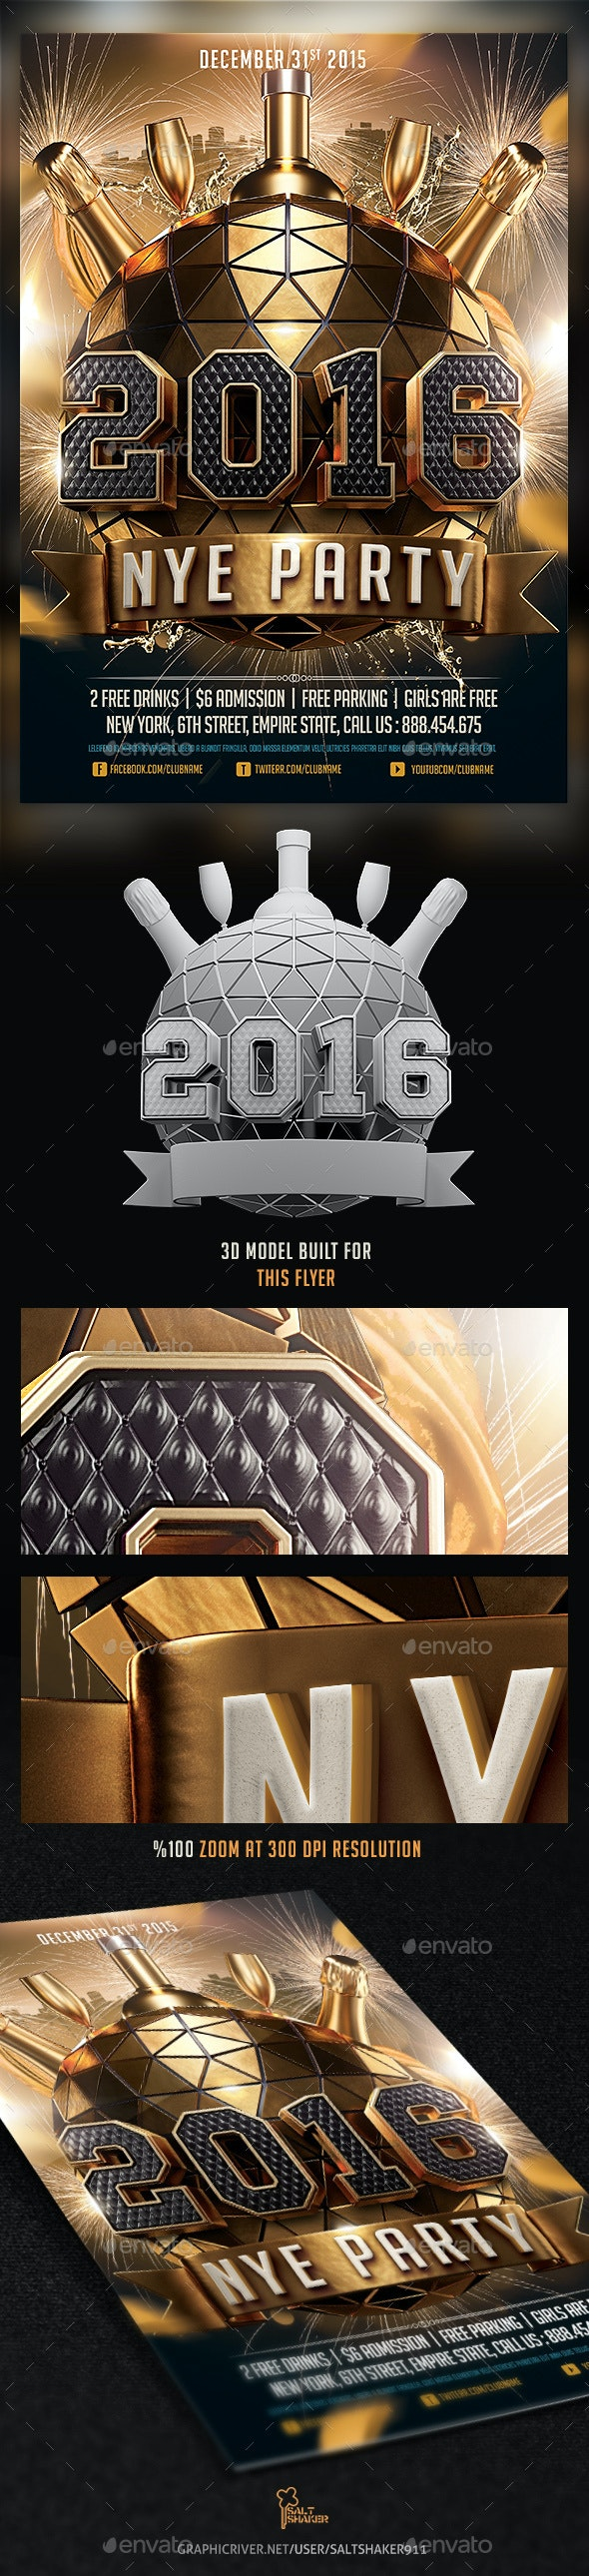 2016 New Years Eve NYE Flyer Template - Holidays Events